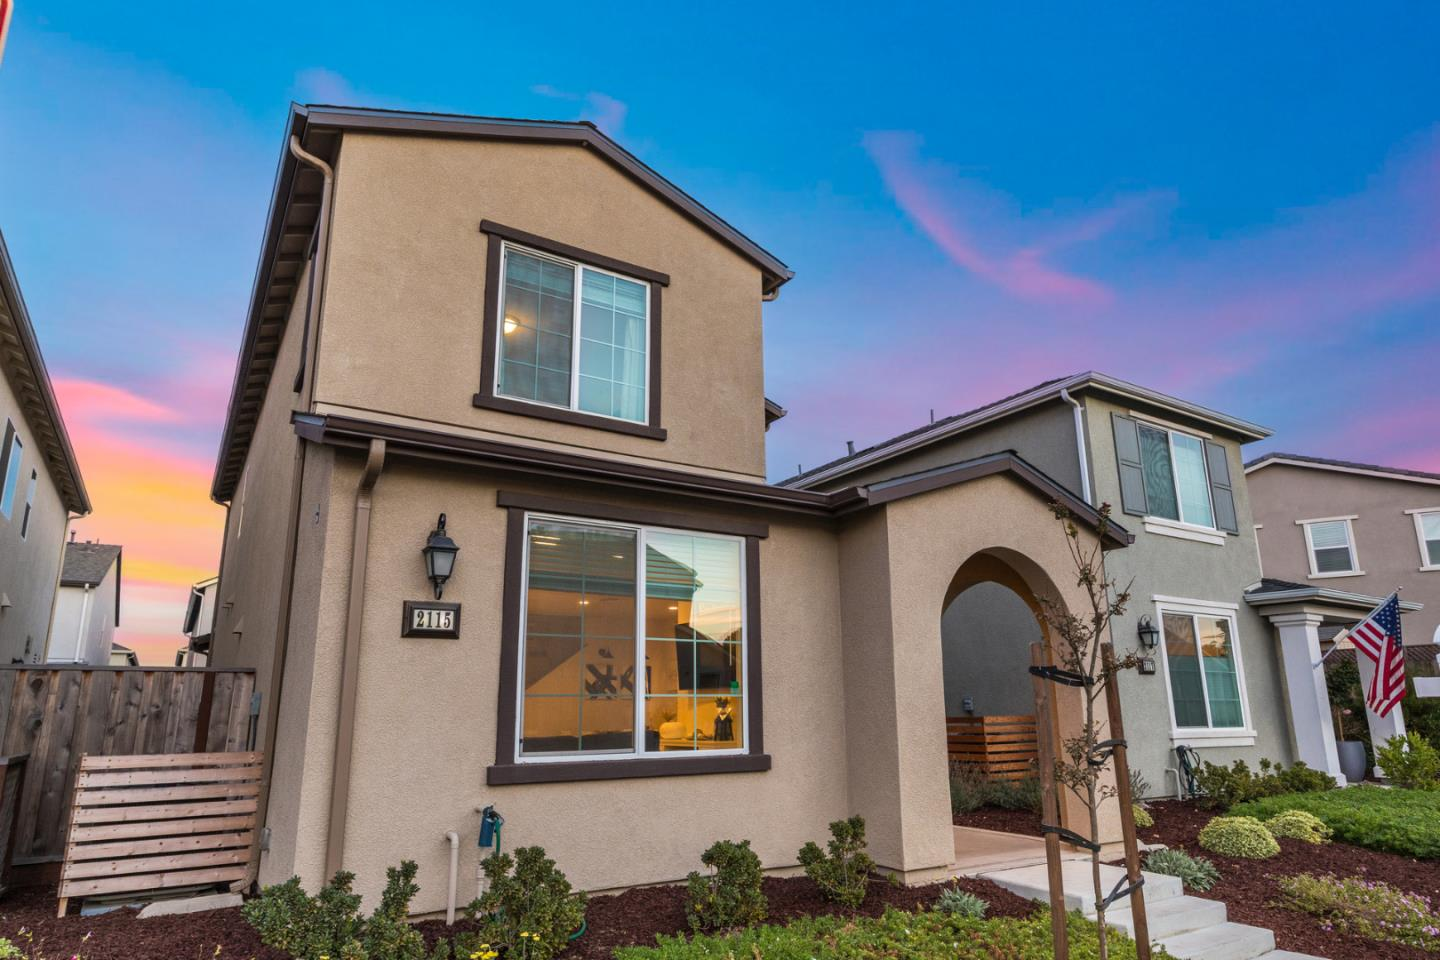 3-Bedroom House In Hollister